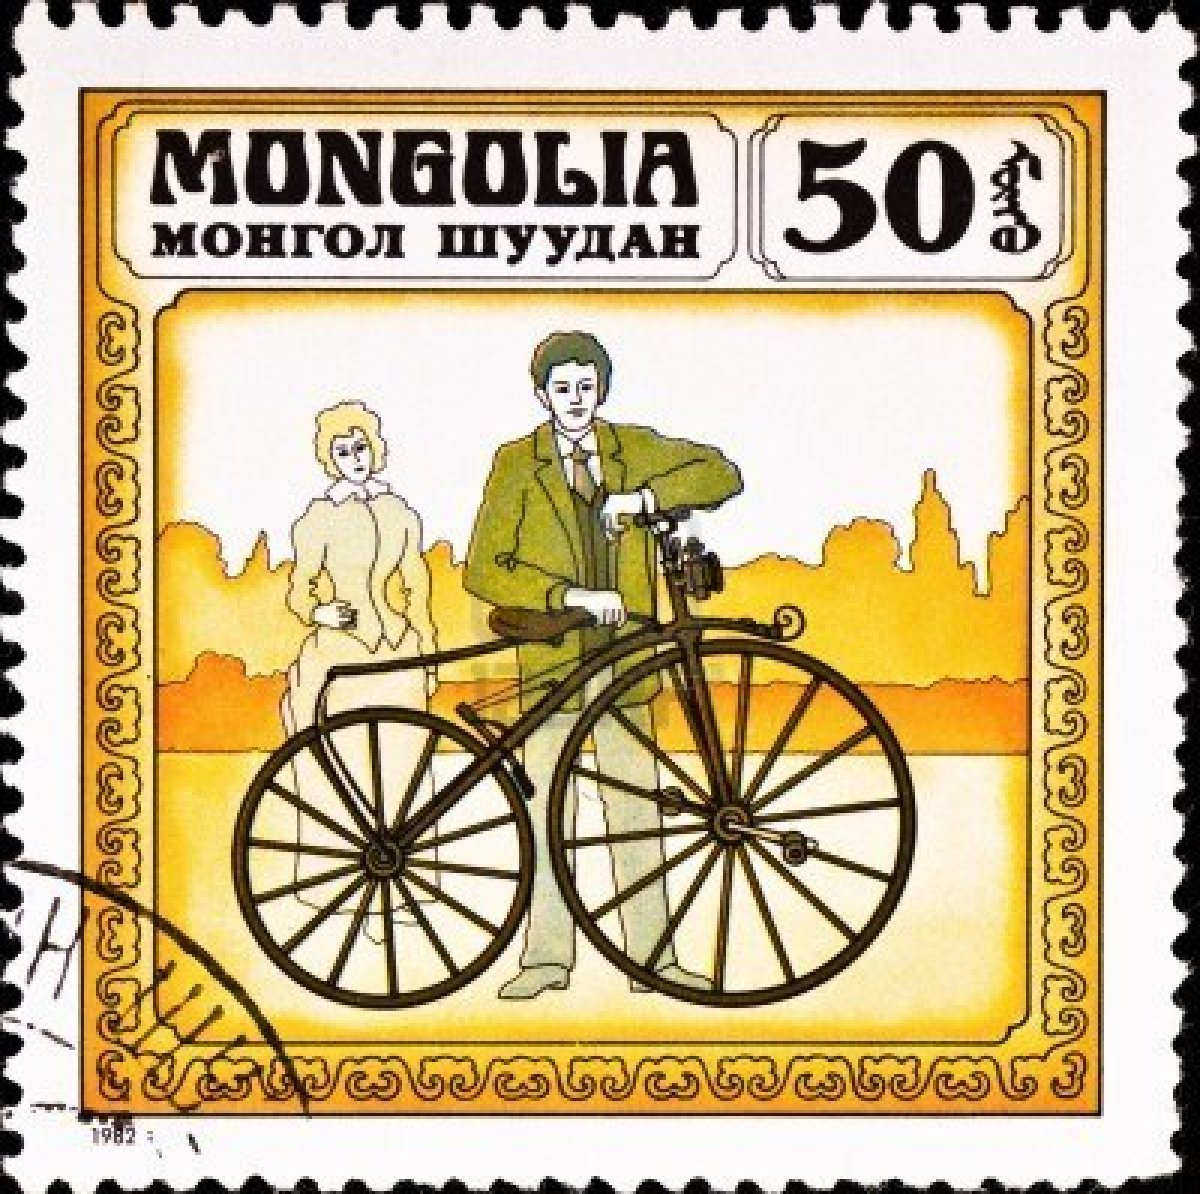 6662395-mongolia--circa-1982-postage-stamp-shows-vintage-bicycle-circa-1982